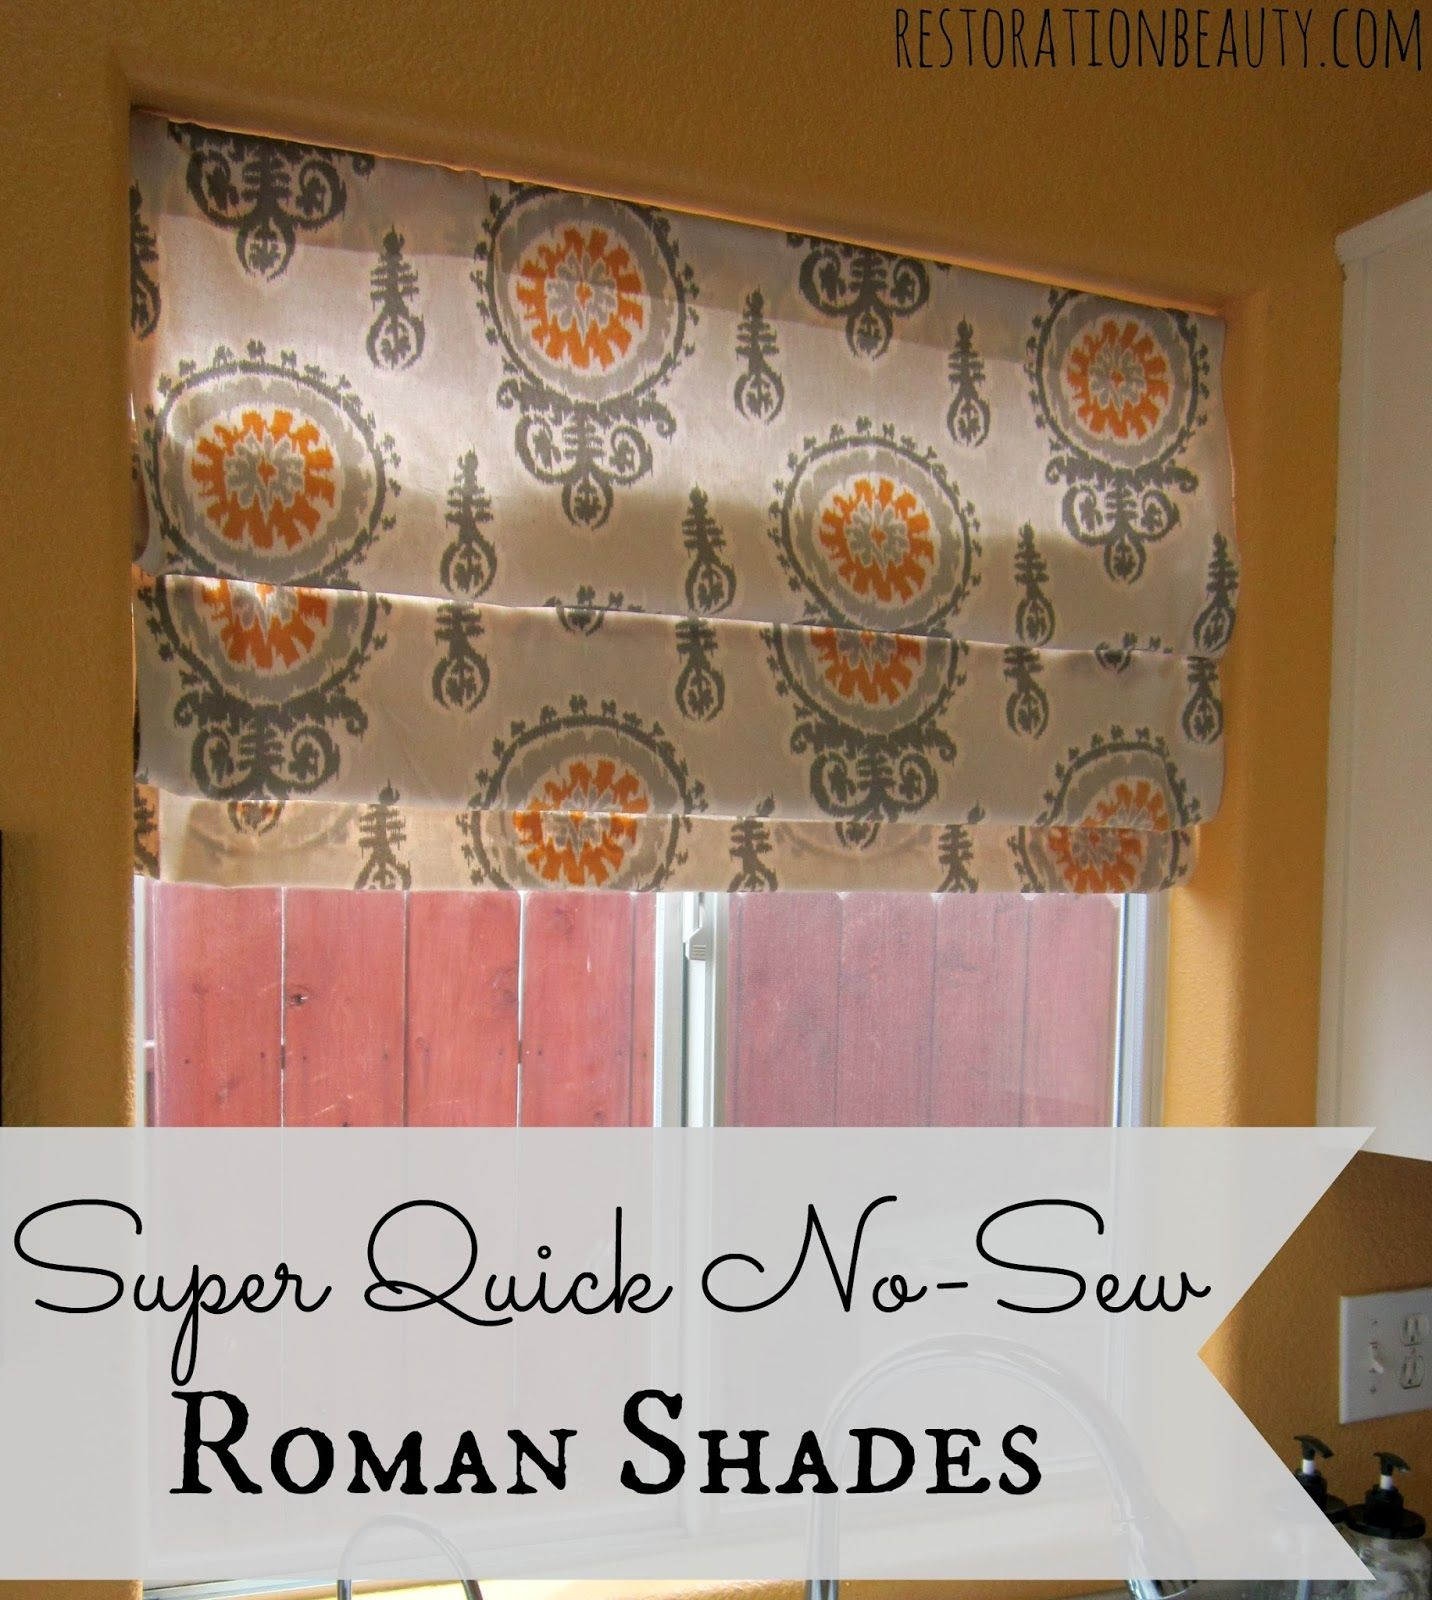 Diy Roman Shades For French Doors Super Quick No Sew Roman Shades Diy Diy Window Shades